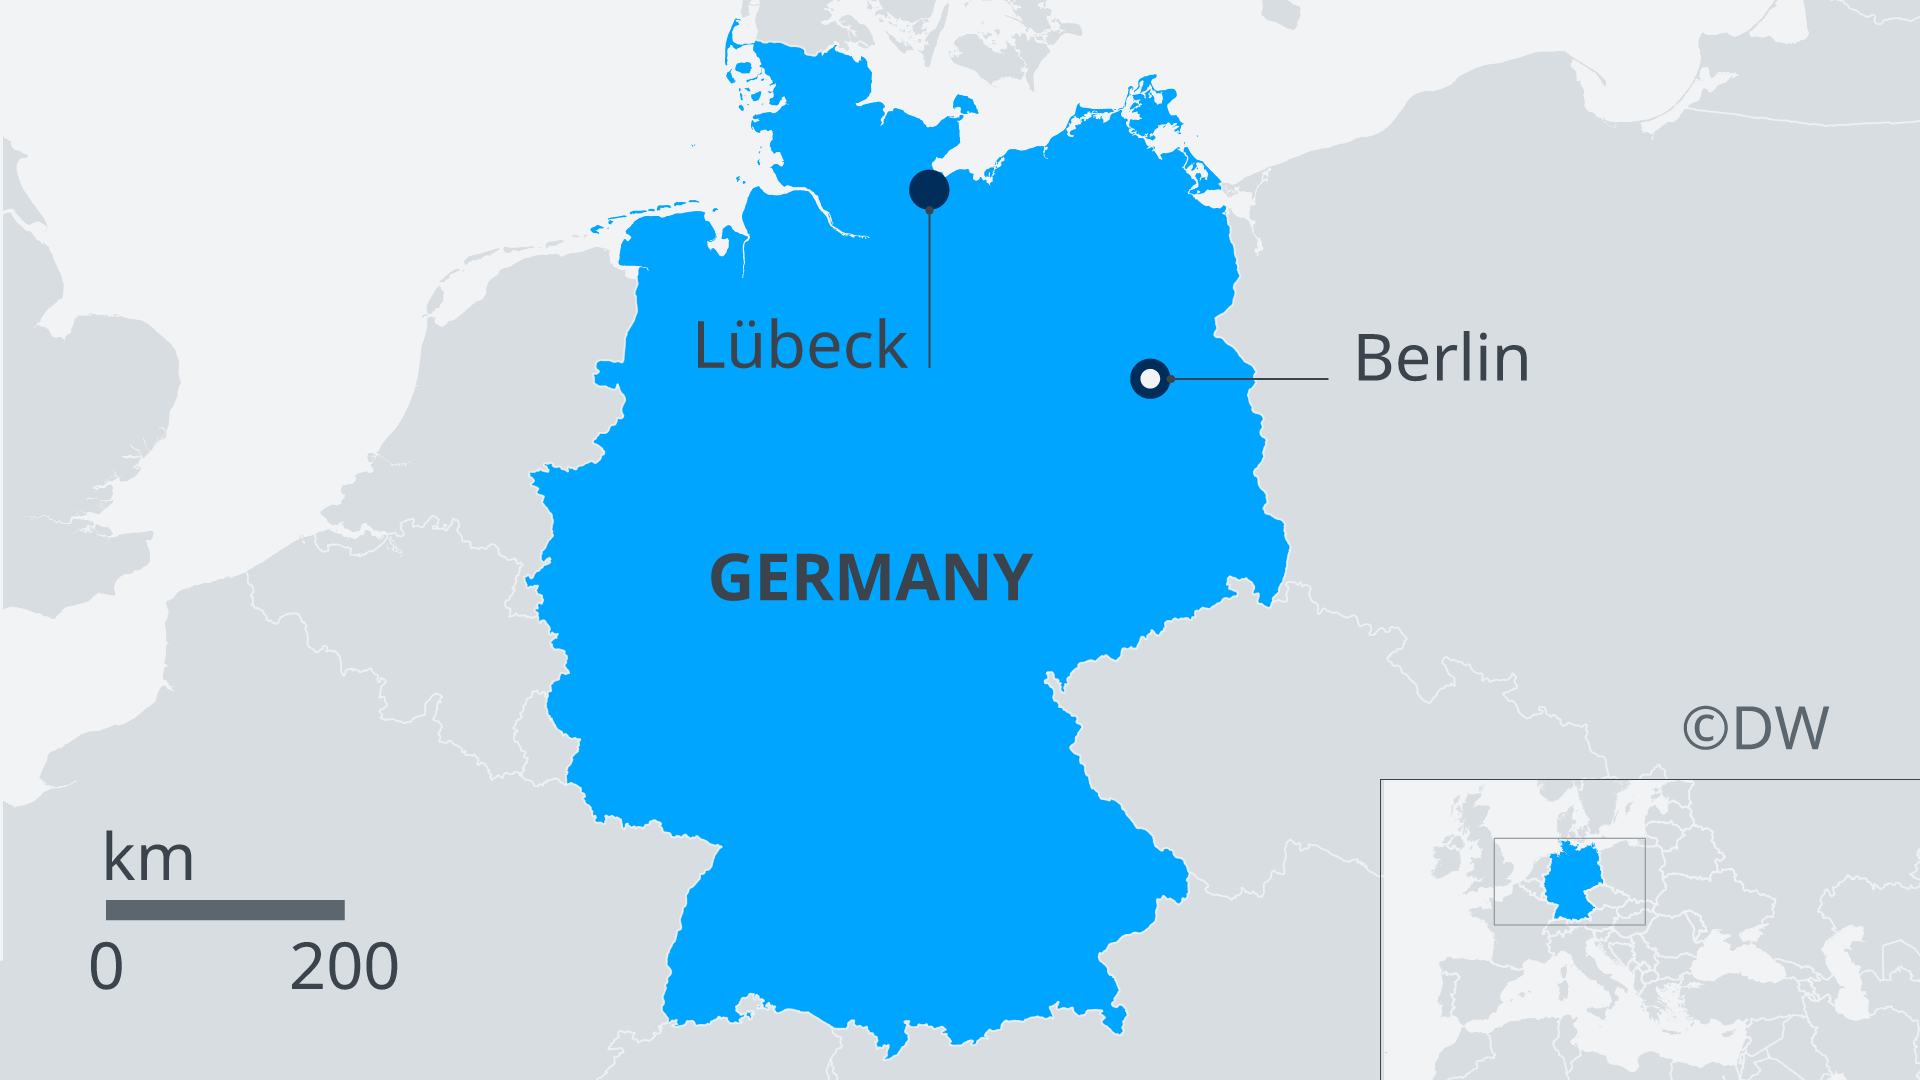 A map of Germany showing Lübeck